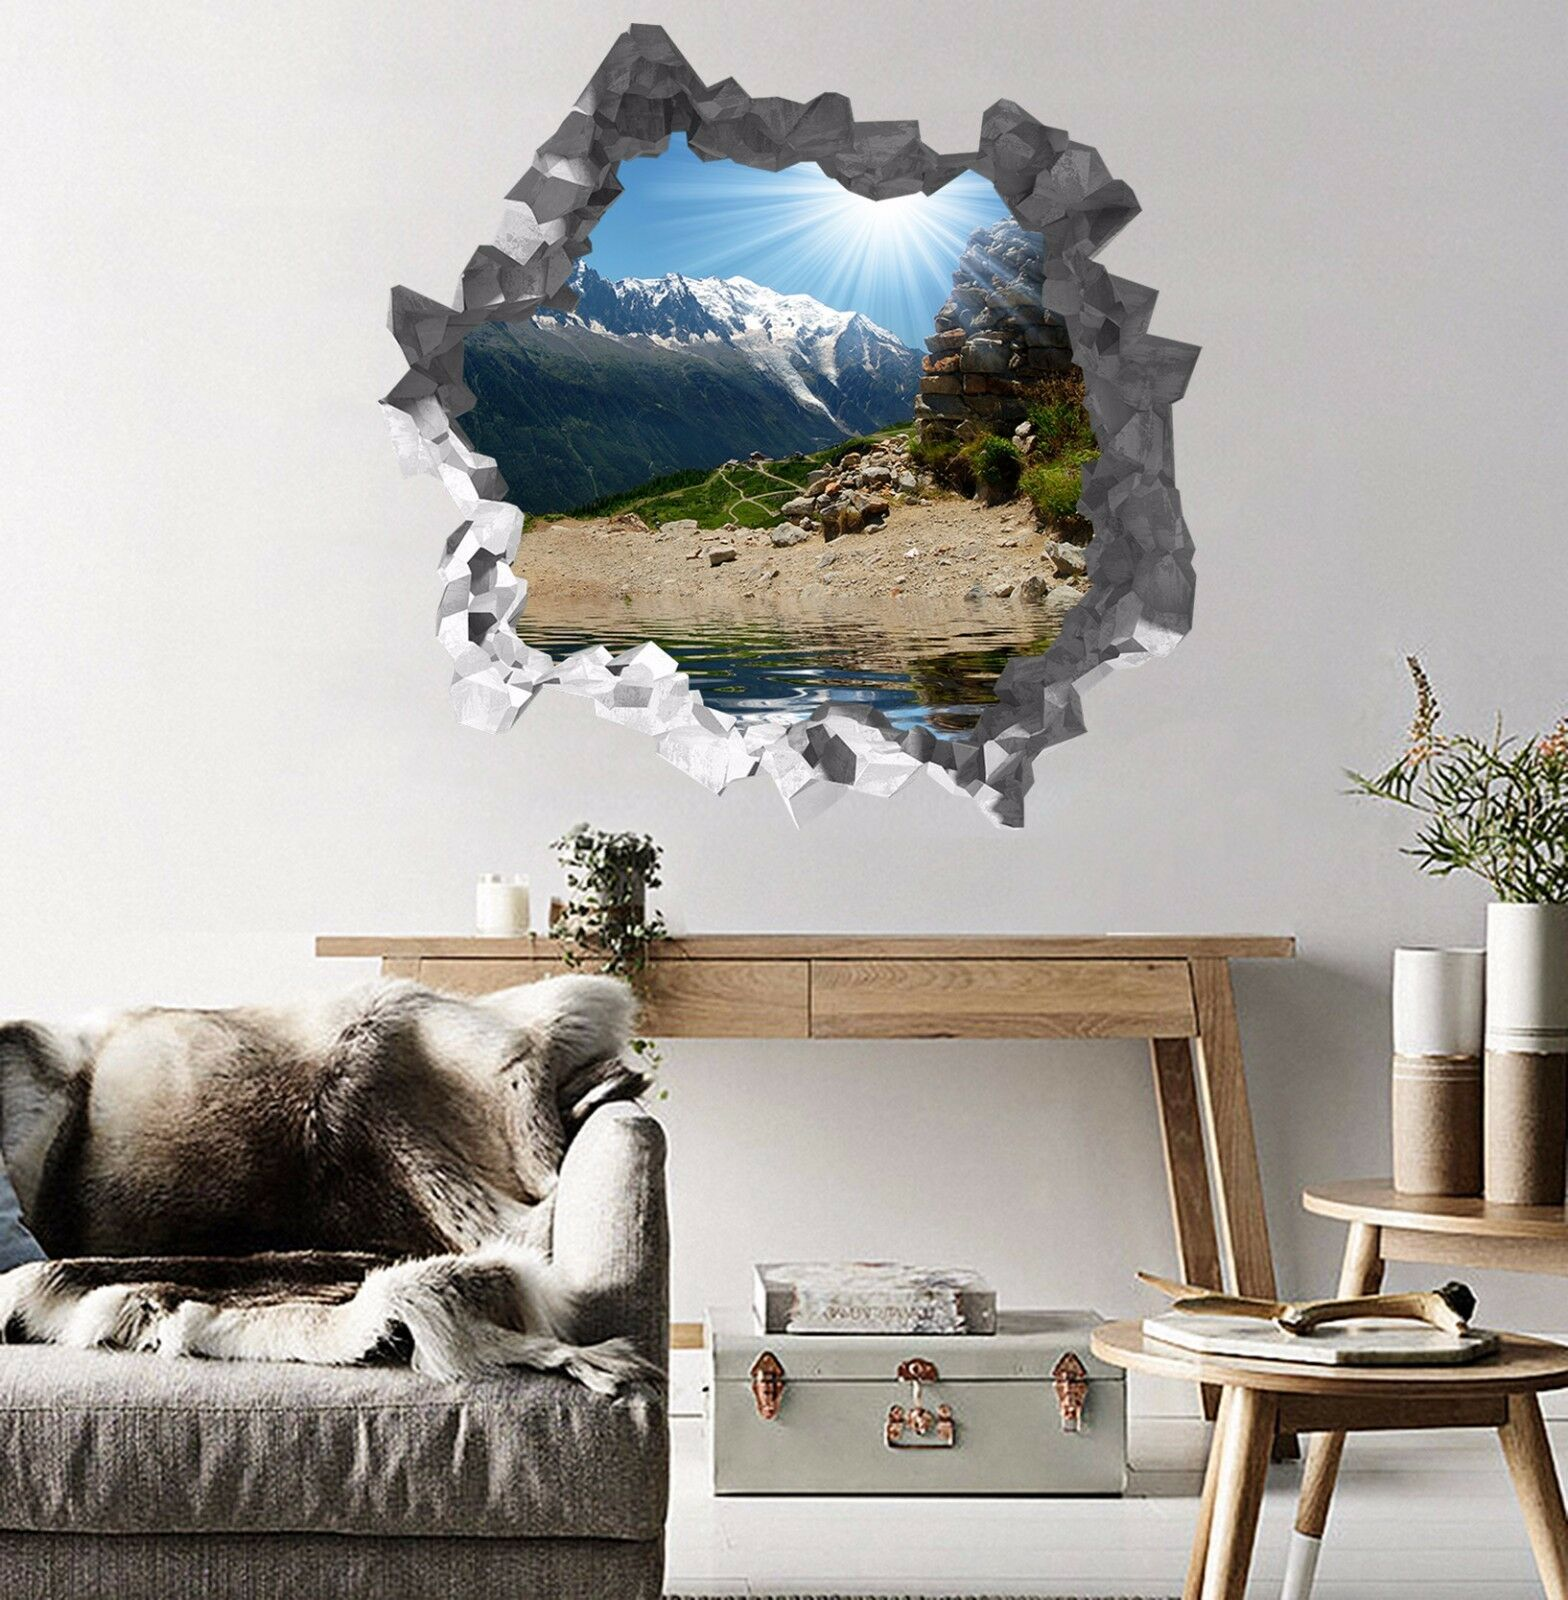 3D Montagna 20 Parete Murales Parete Adesivi Decal Sfondamento AJ WALLPAPER IT